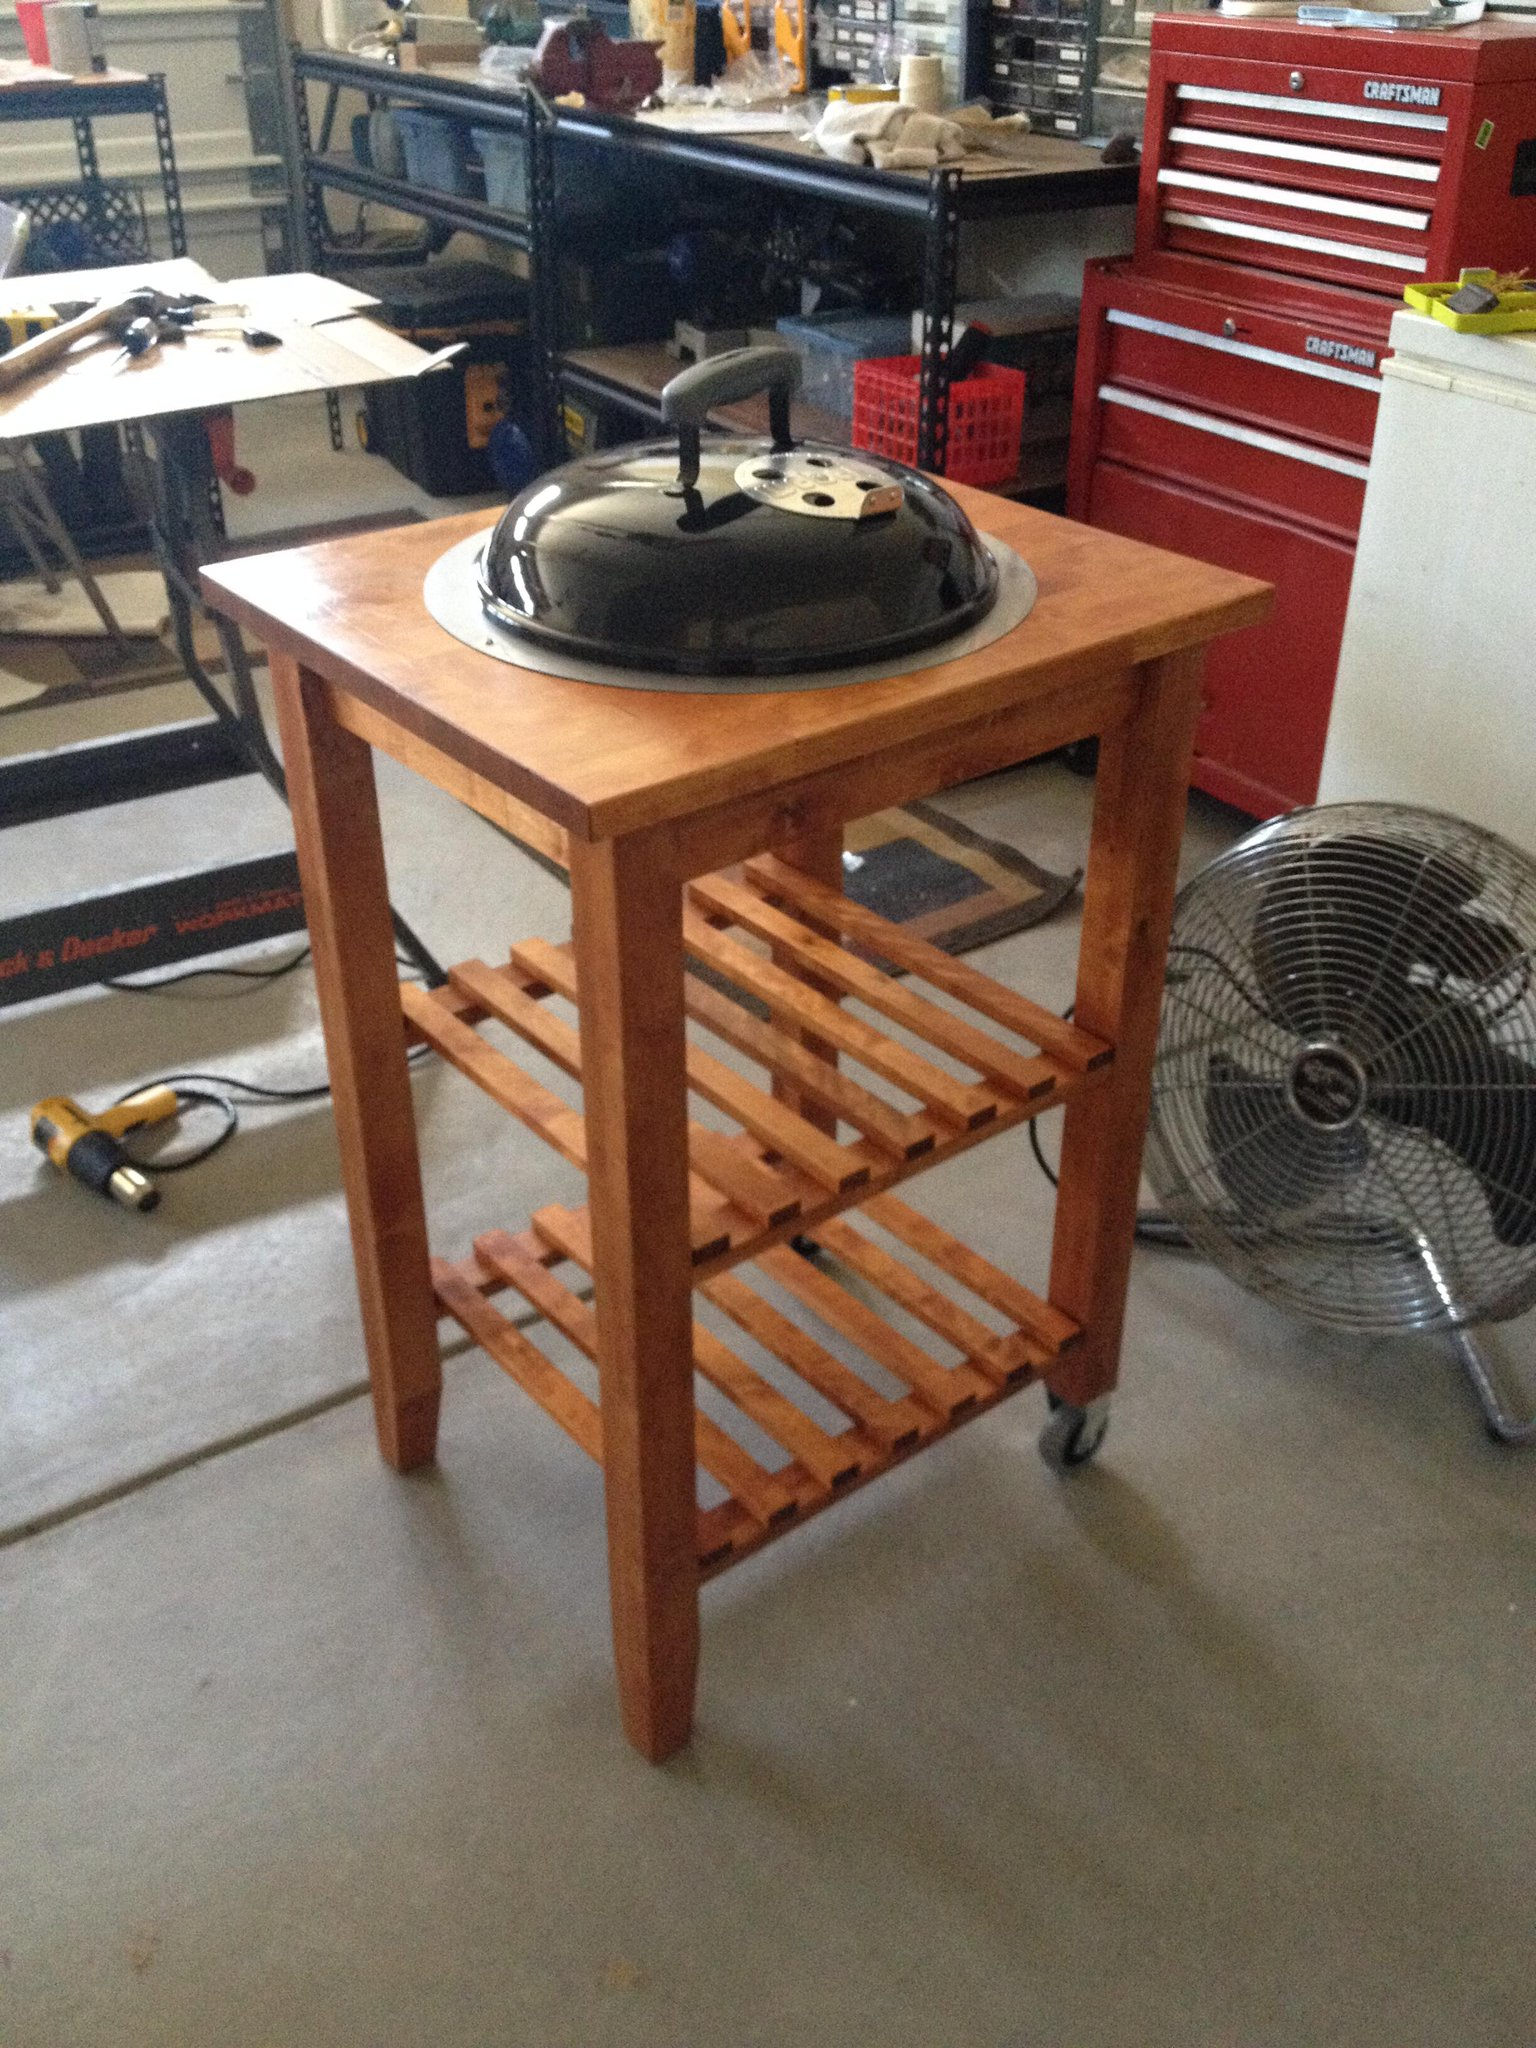 scott newman on twitter make i made a sweet mini grill table from an ikea kitchen cart a. Black Bedroom Furniture Sets. Home Design Ideas